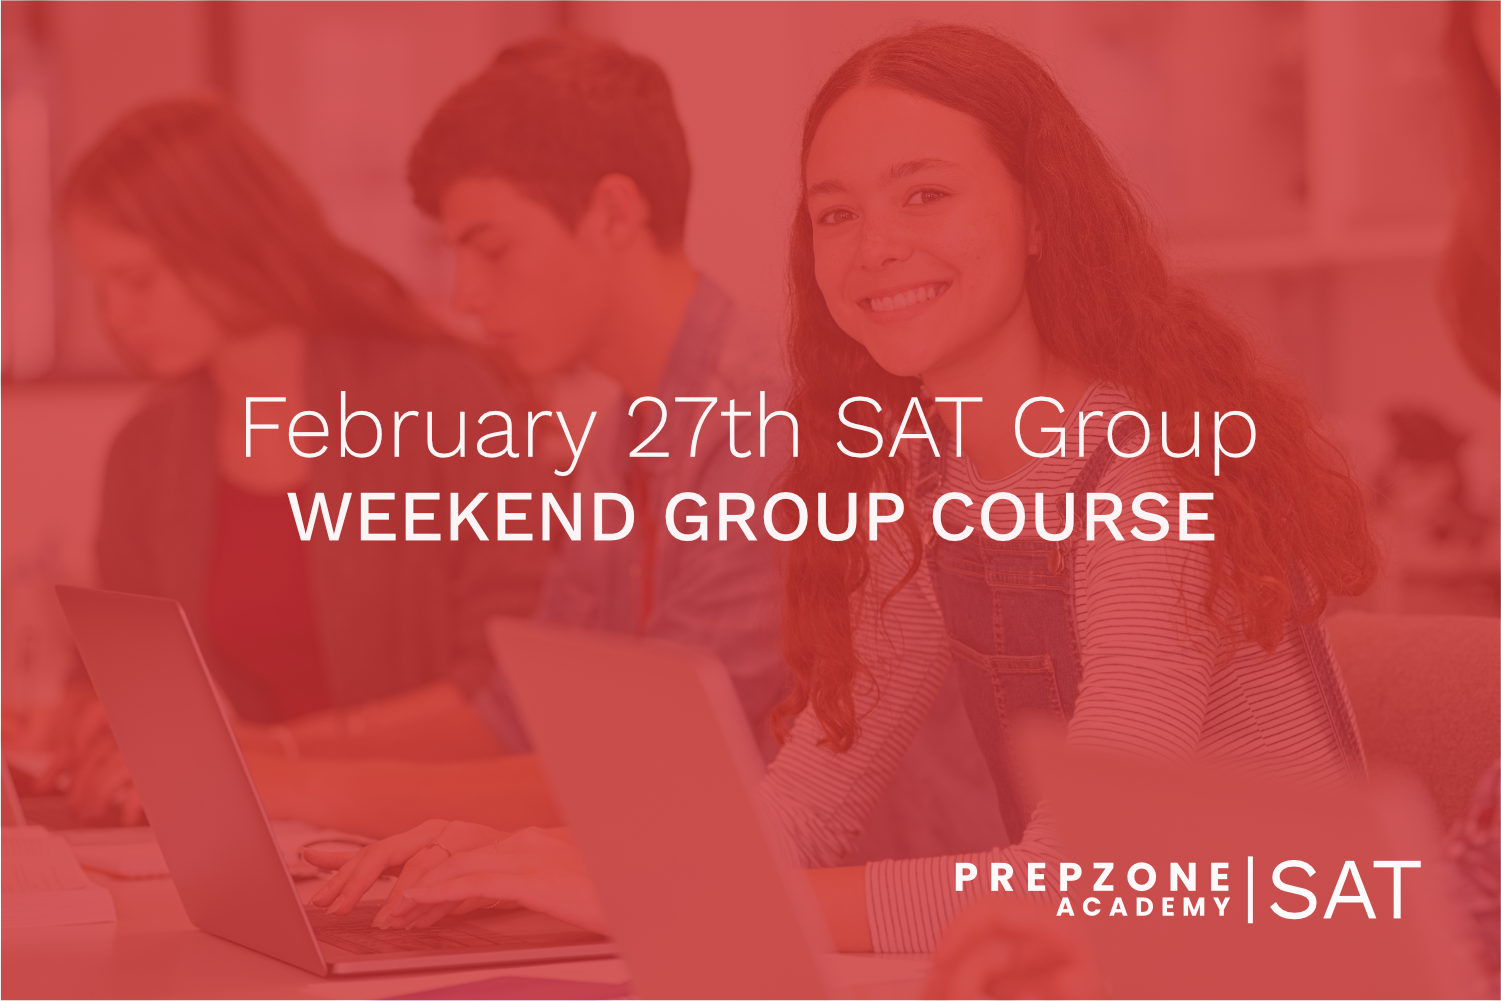 SAT Weekend Group Course Schedule – February 27th, 2021